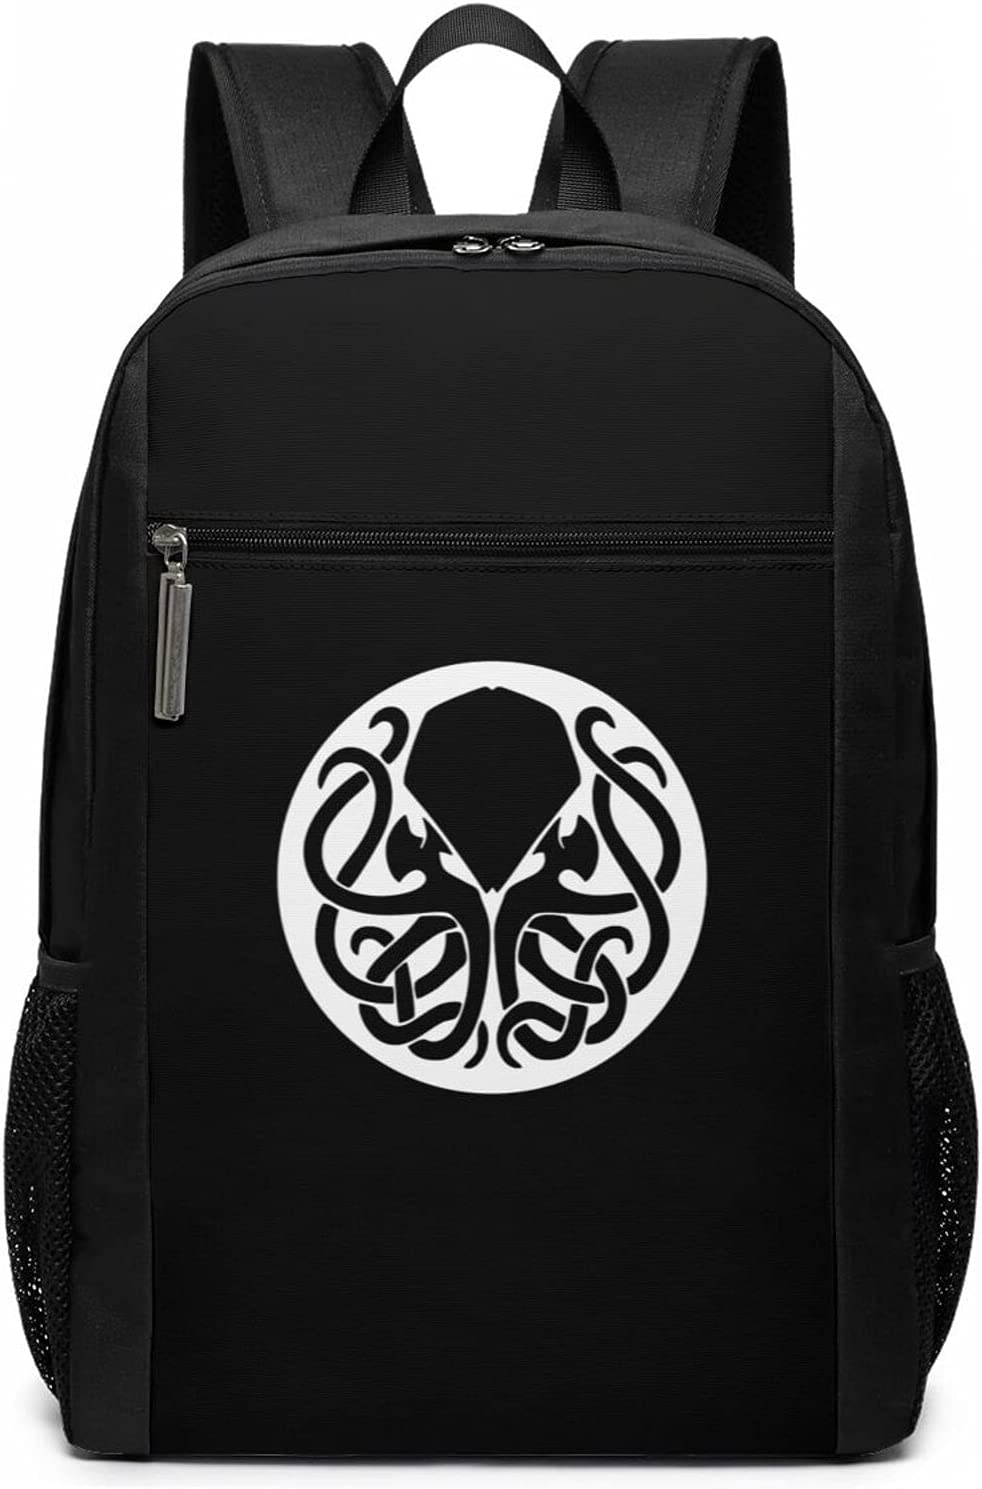 17Inch Cthulhu Badge Computer Bags Durable Waterproof Bags Laptop Backpack For Mens Womens Students